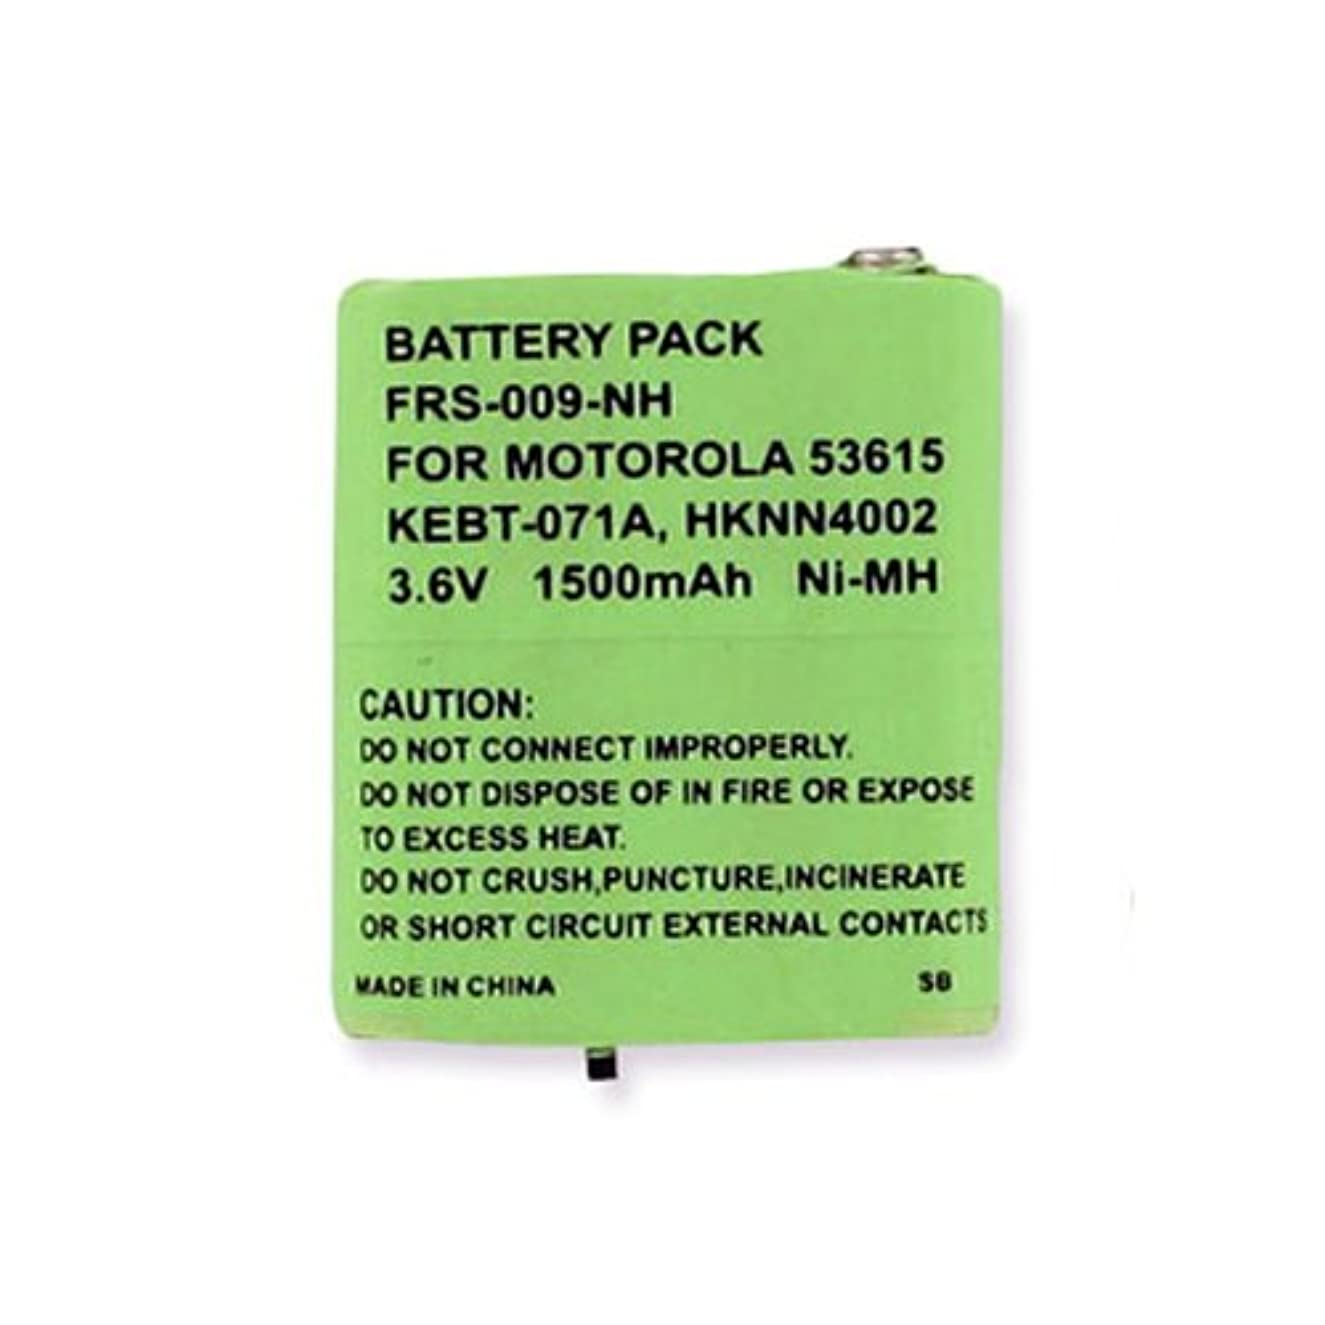 Motorola MT350R 2-Way Radio Battery (Ni-MH 3.6V 1500mAh) Rechargeable Battery - replacement for Motorola 53615